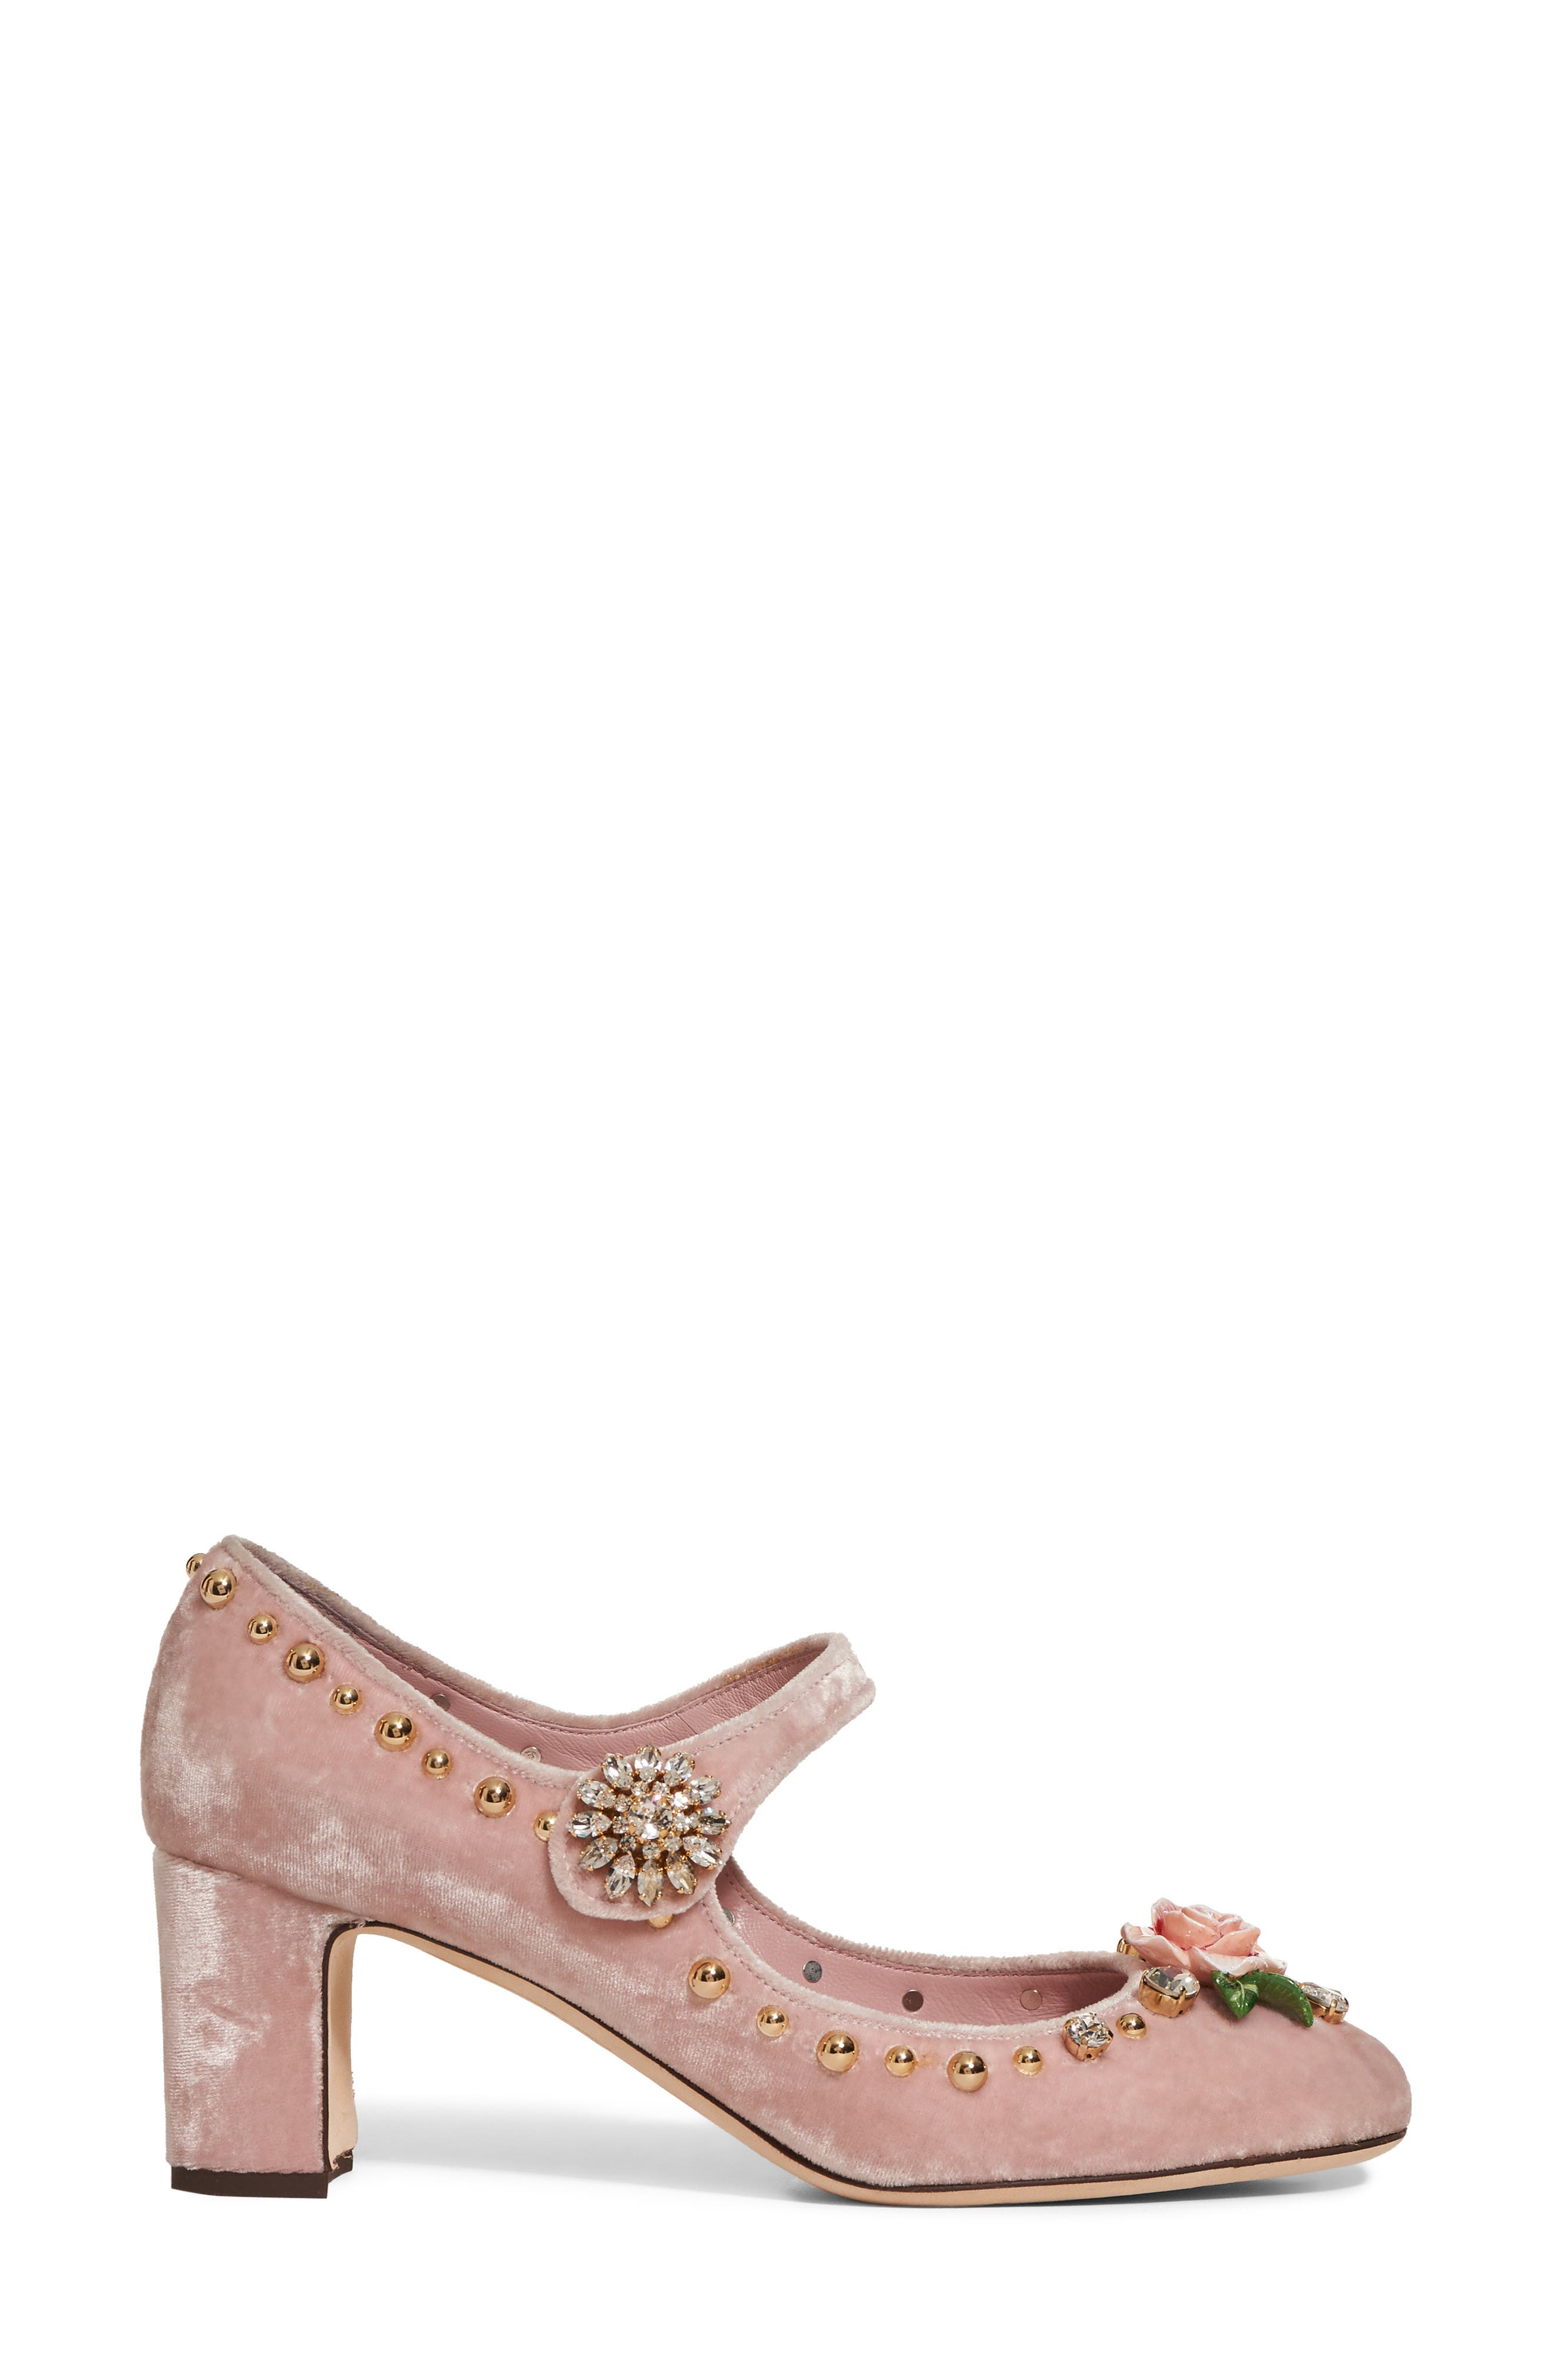 Rose Mary Jane Pump,                             Alternate thumbnail 4, color,                             Pink